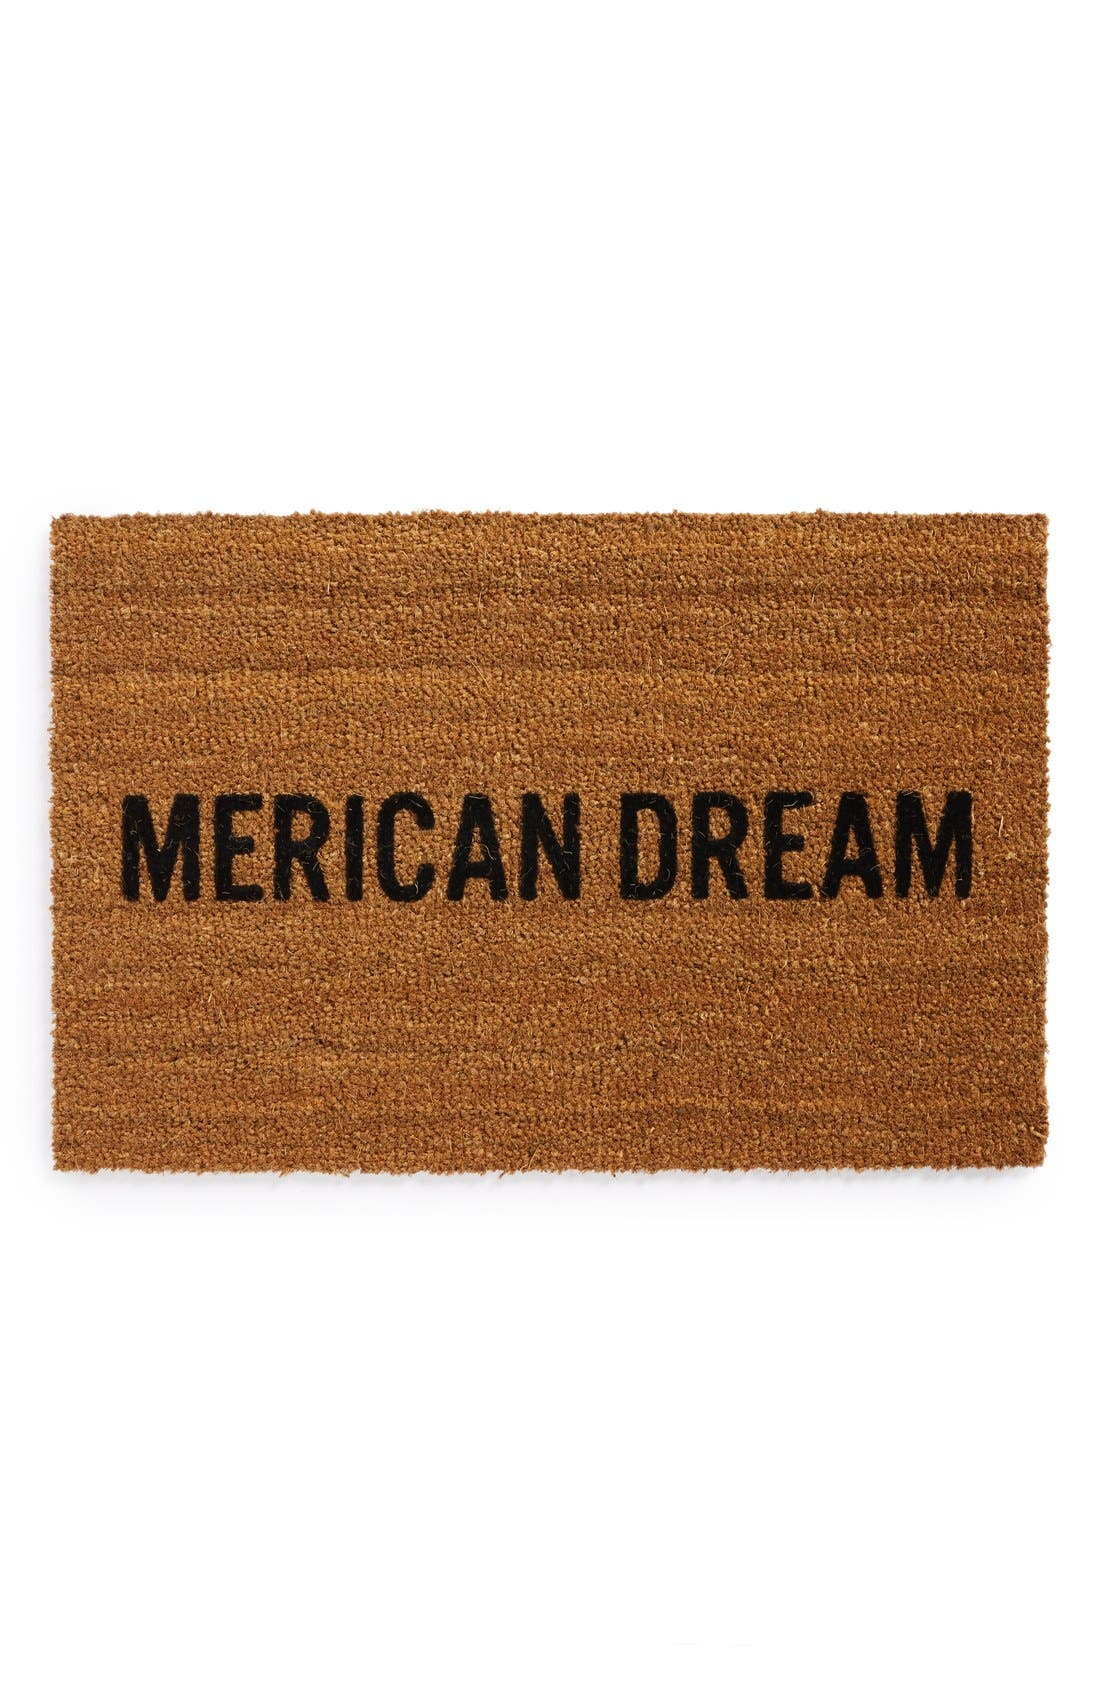 Reed Wilson Design 'Merican Dream' Doormat